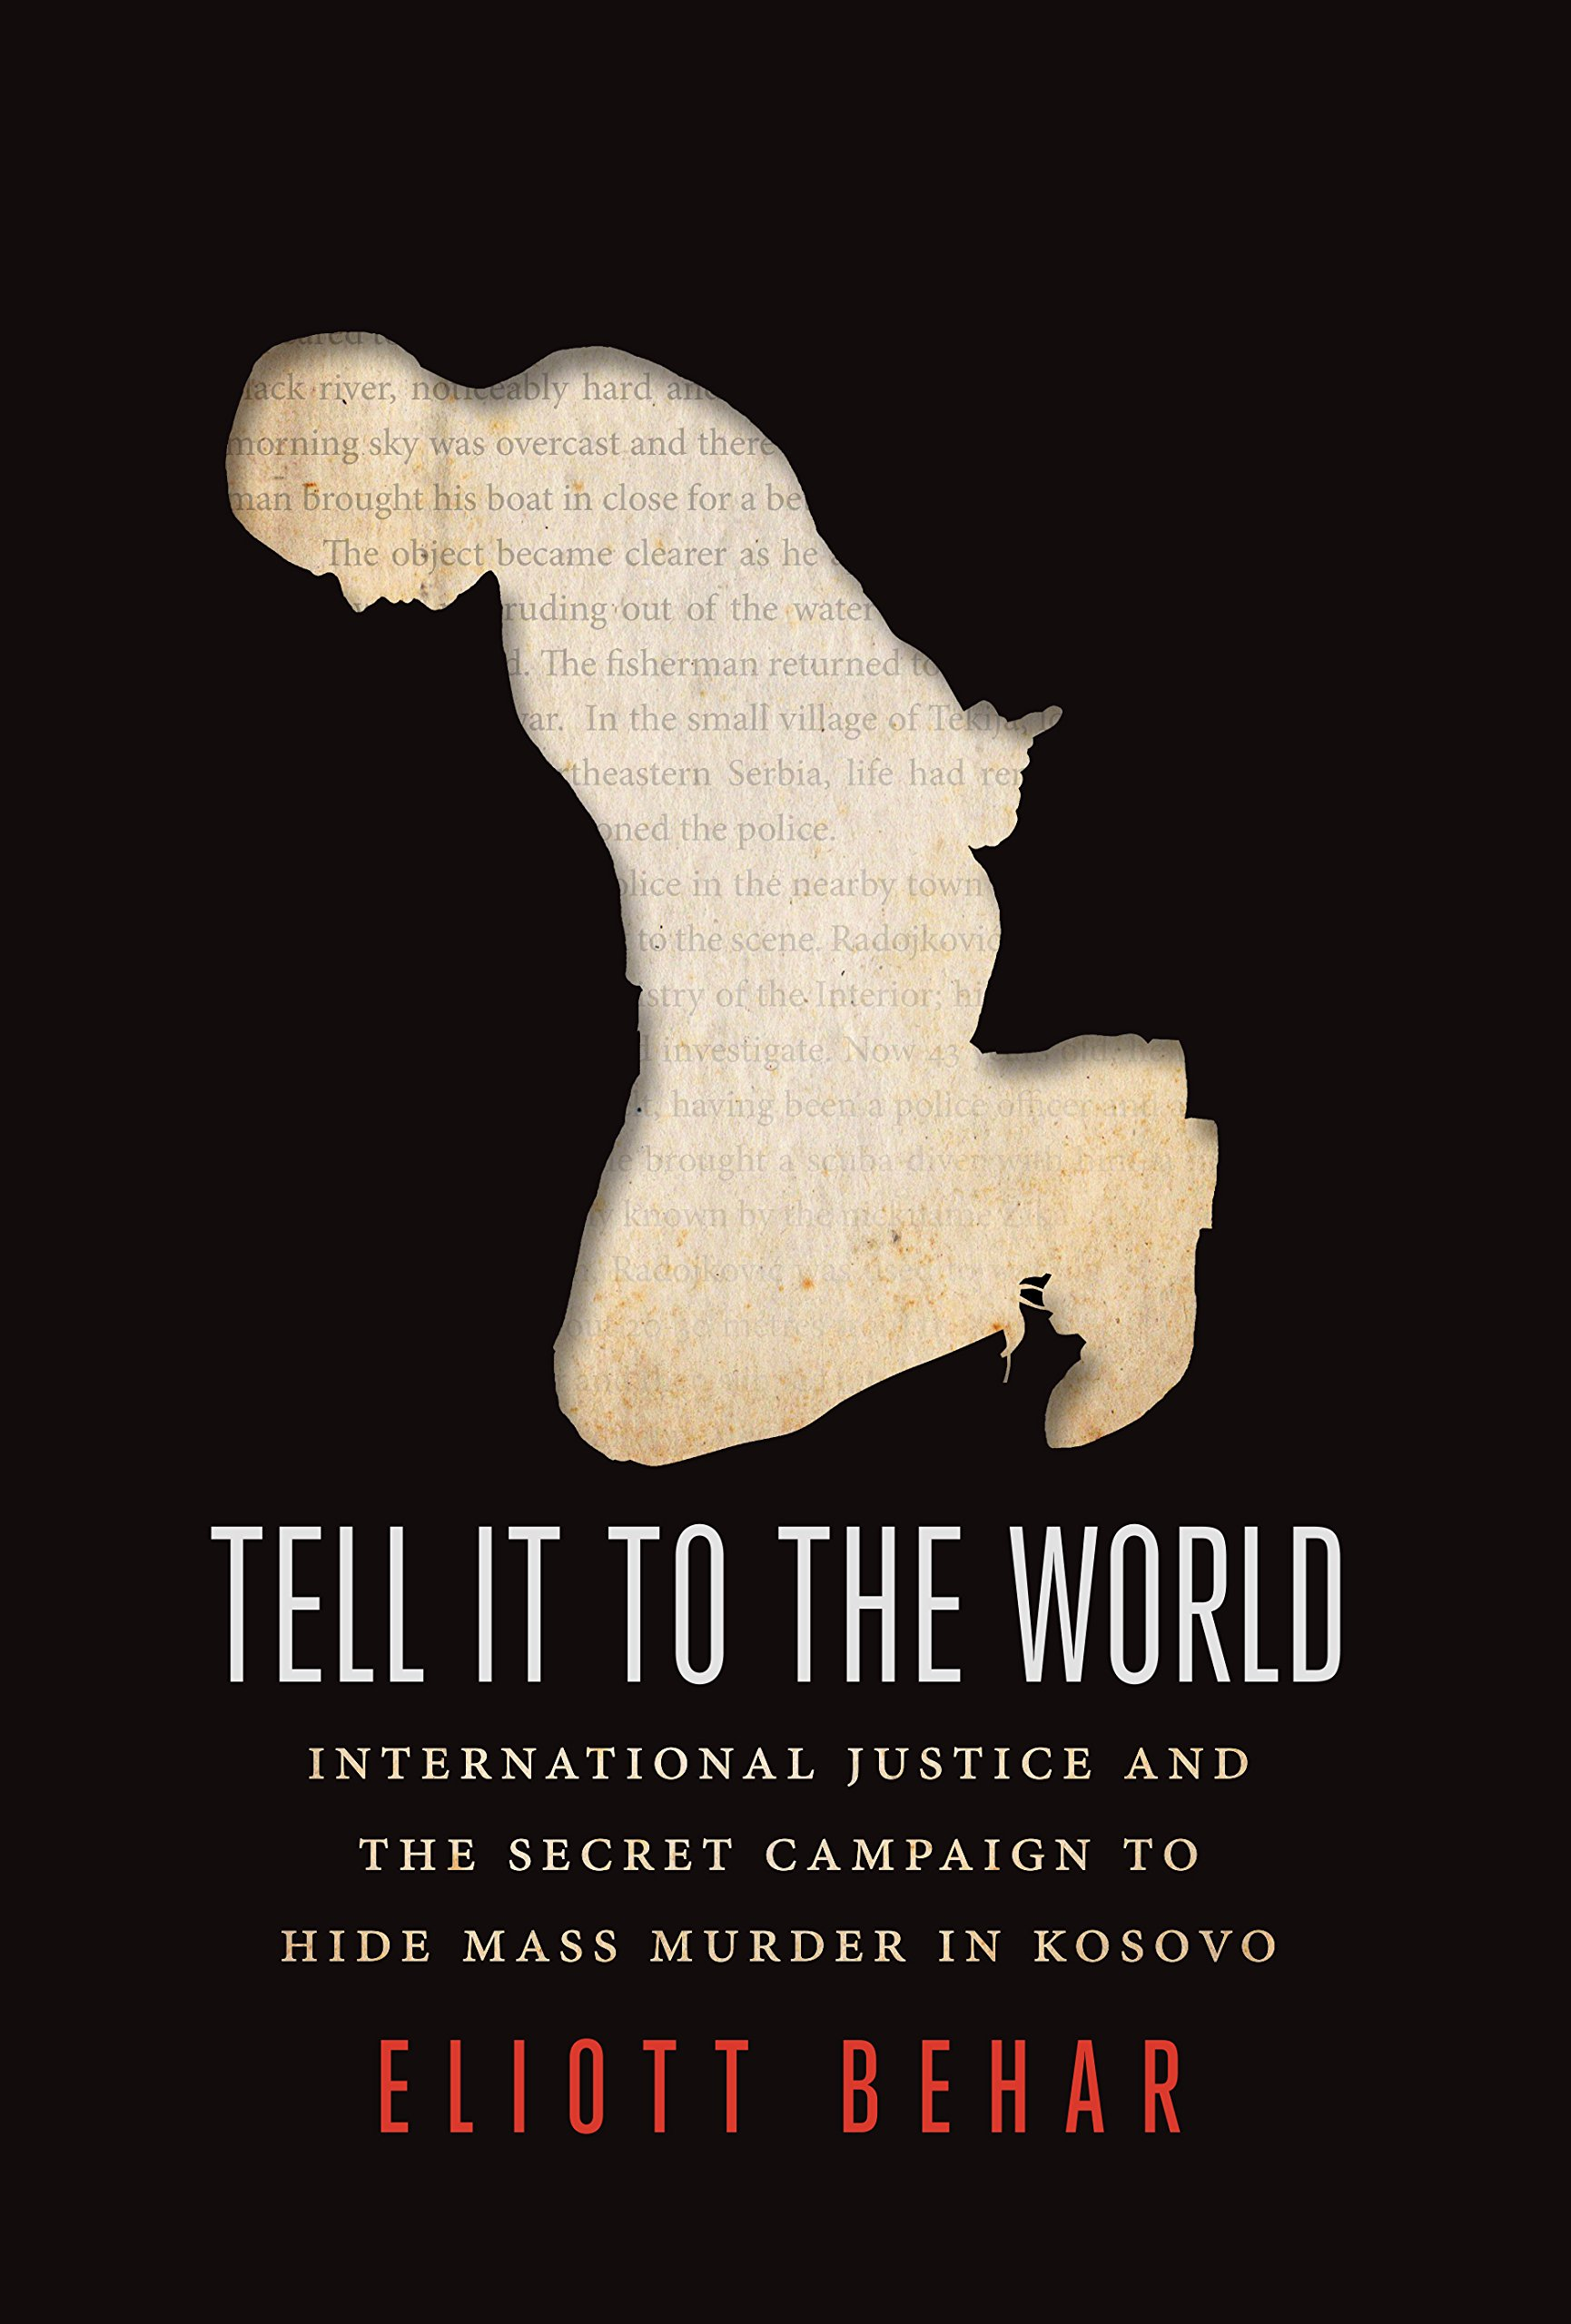 Tell It To The World: International Justice And The Secret Campaign To Hide  Mass Murder In Kosovo: Eliott Behar: 9781459723801: Amazon: Books